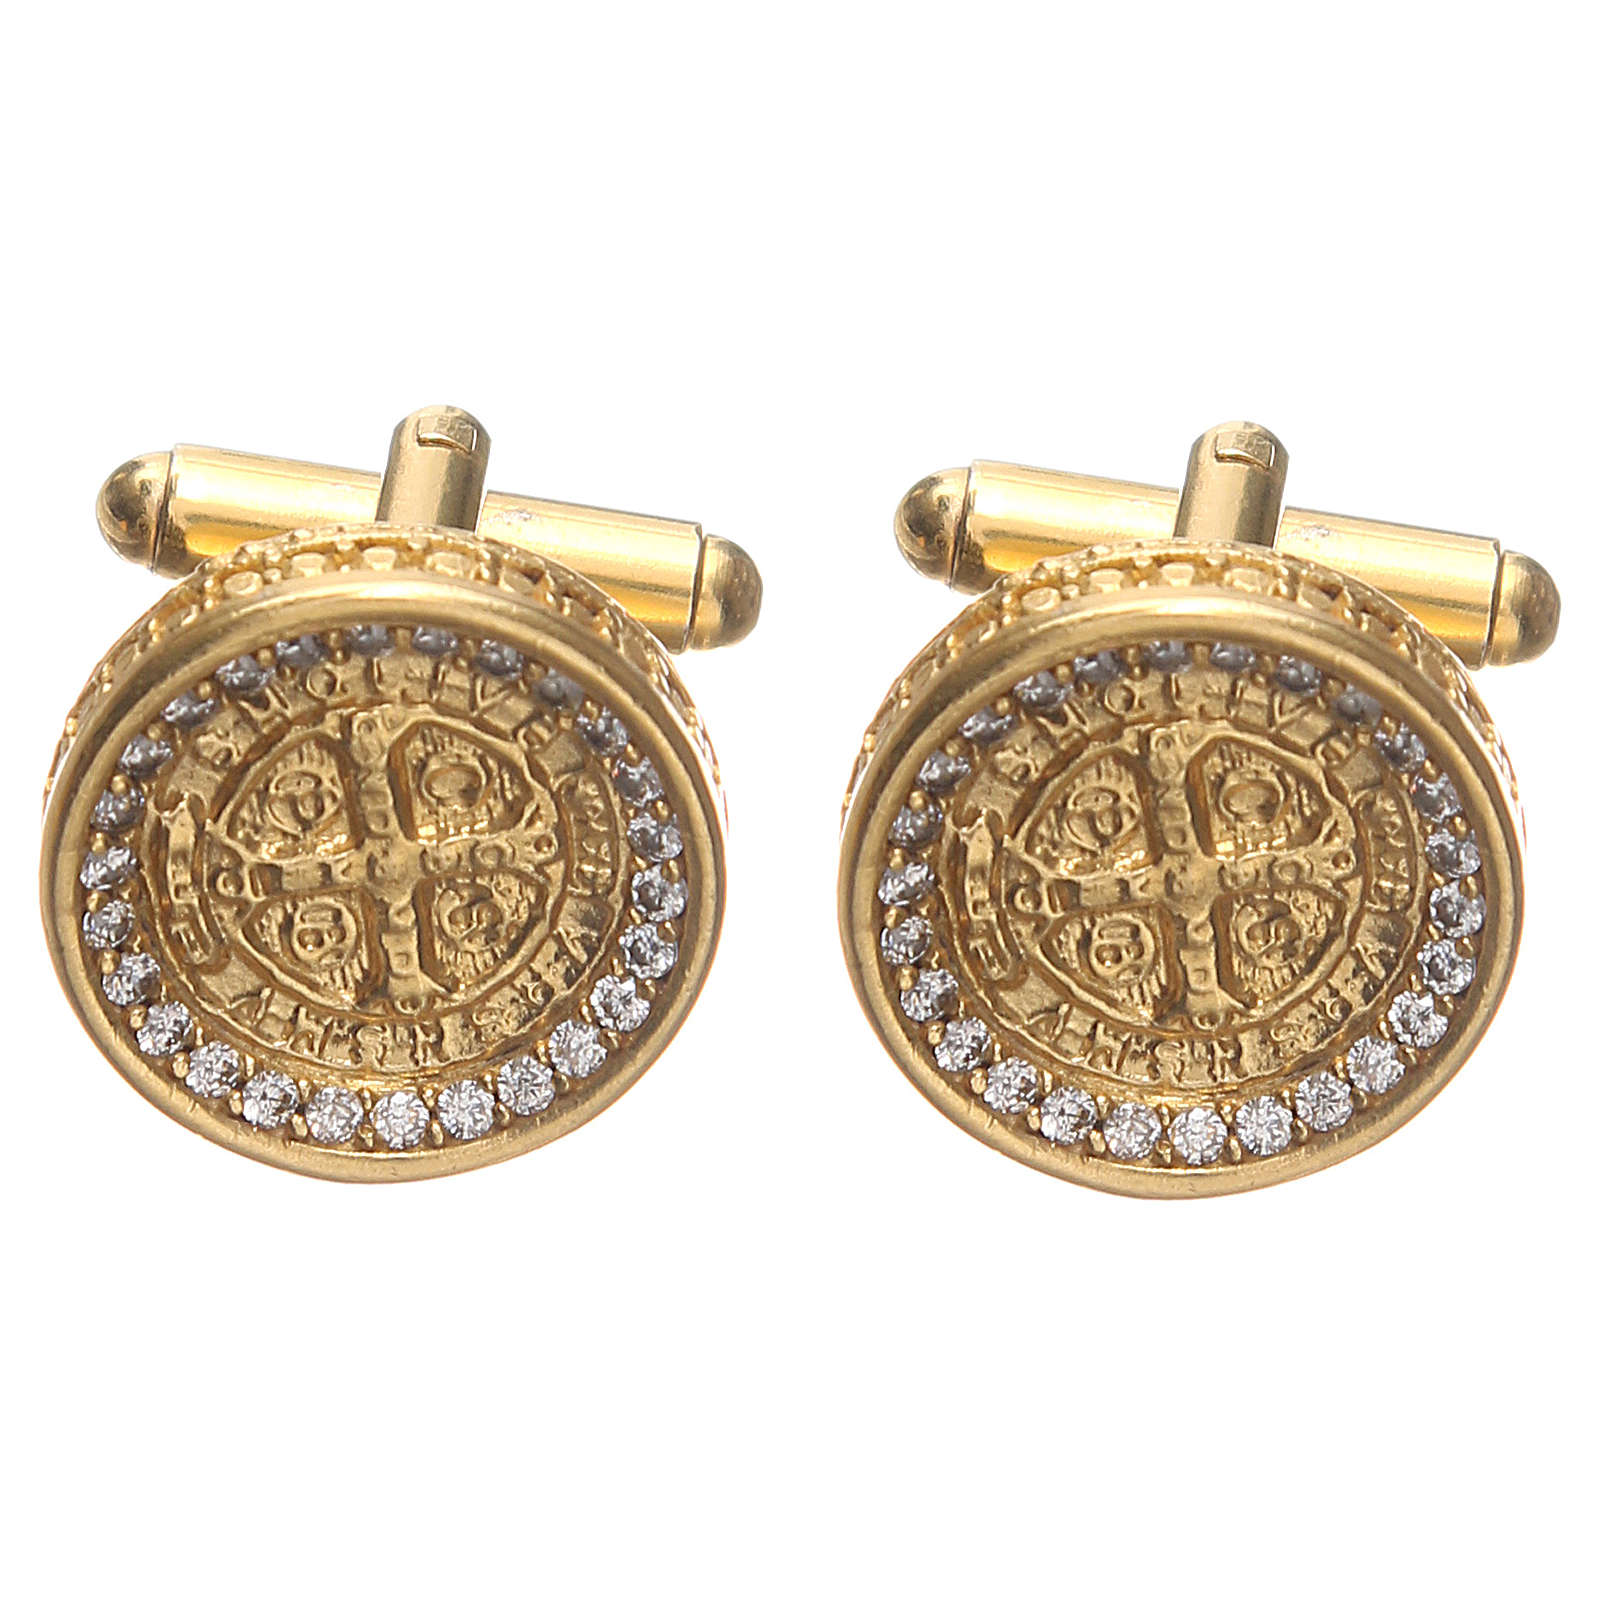 Cufflinks with St Benedict cross 1,7cm, brass 4